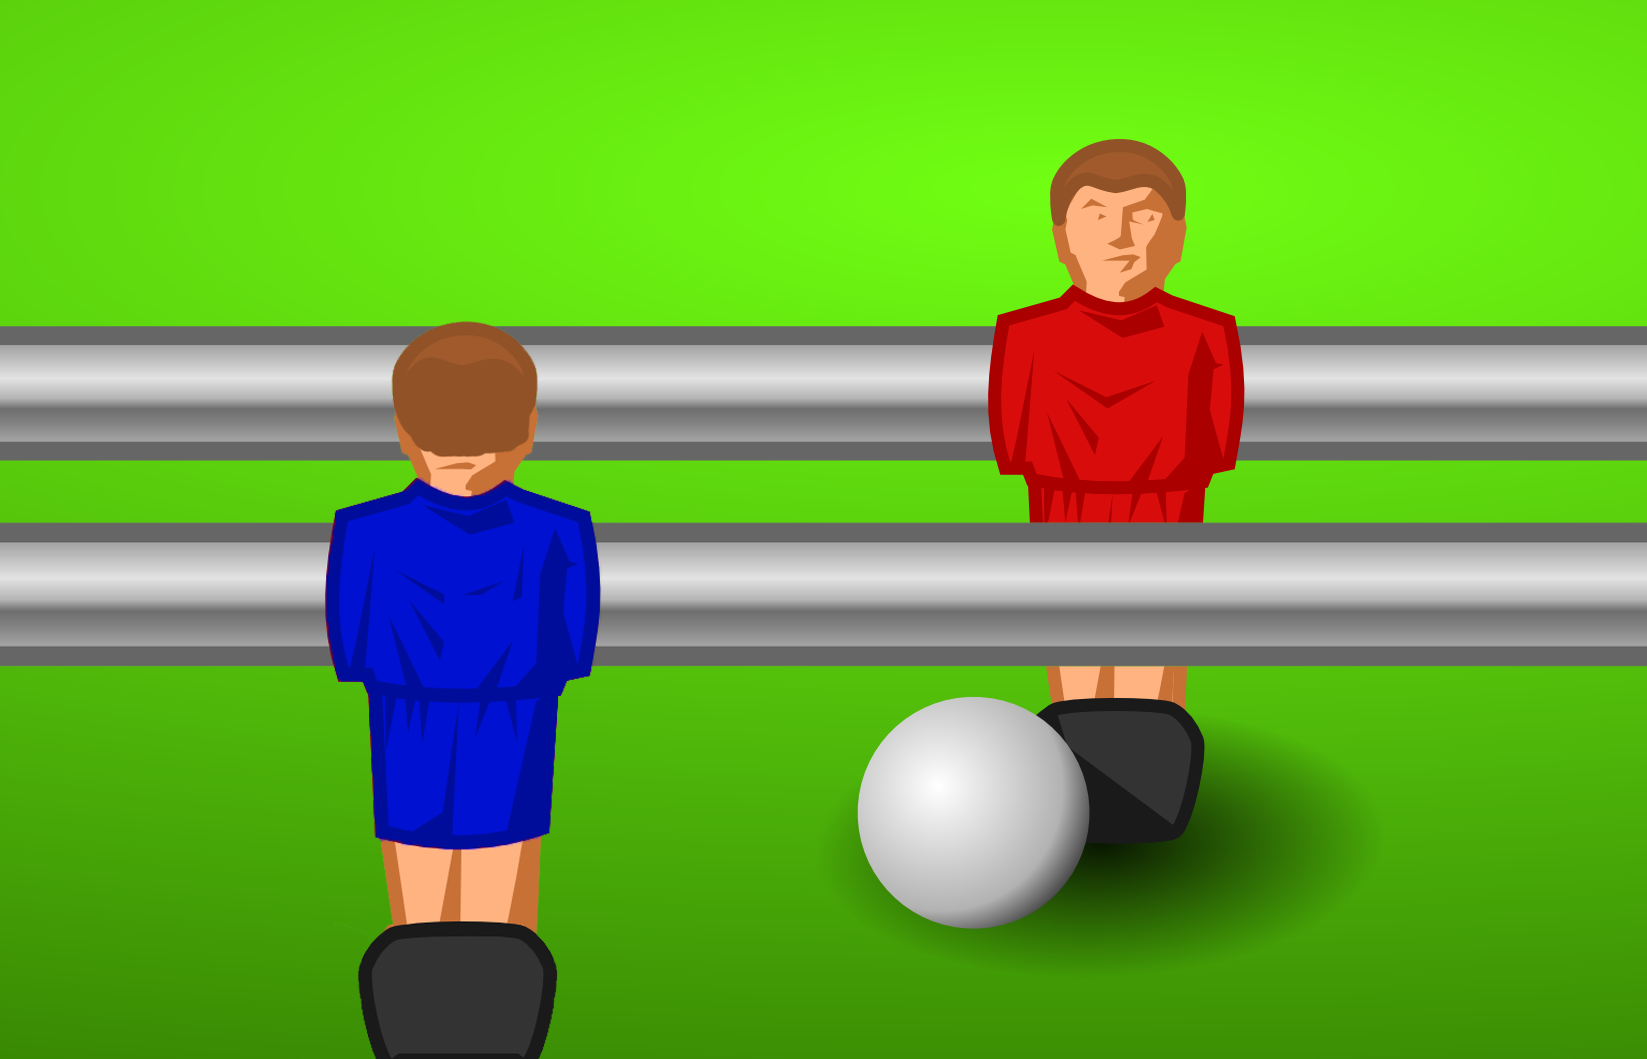 Foosball 2 Player game